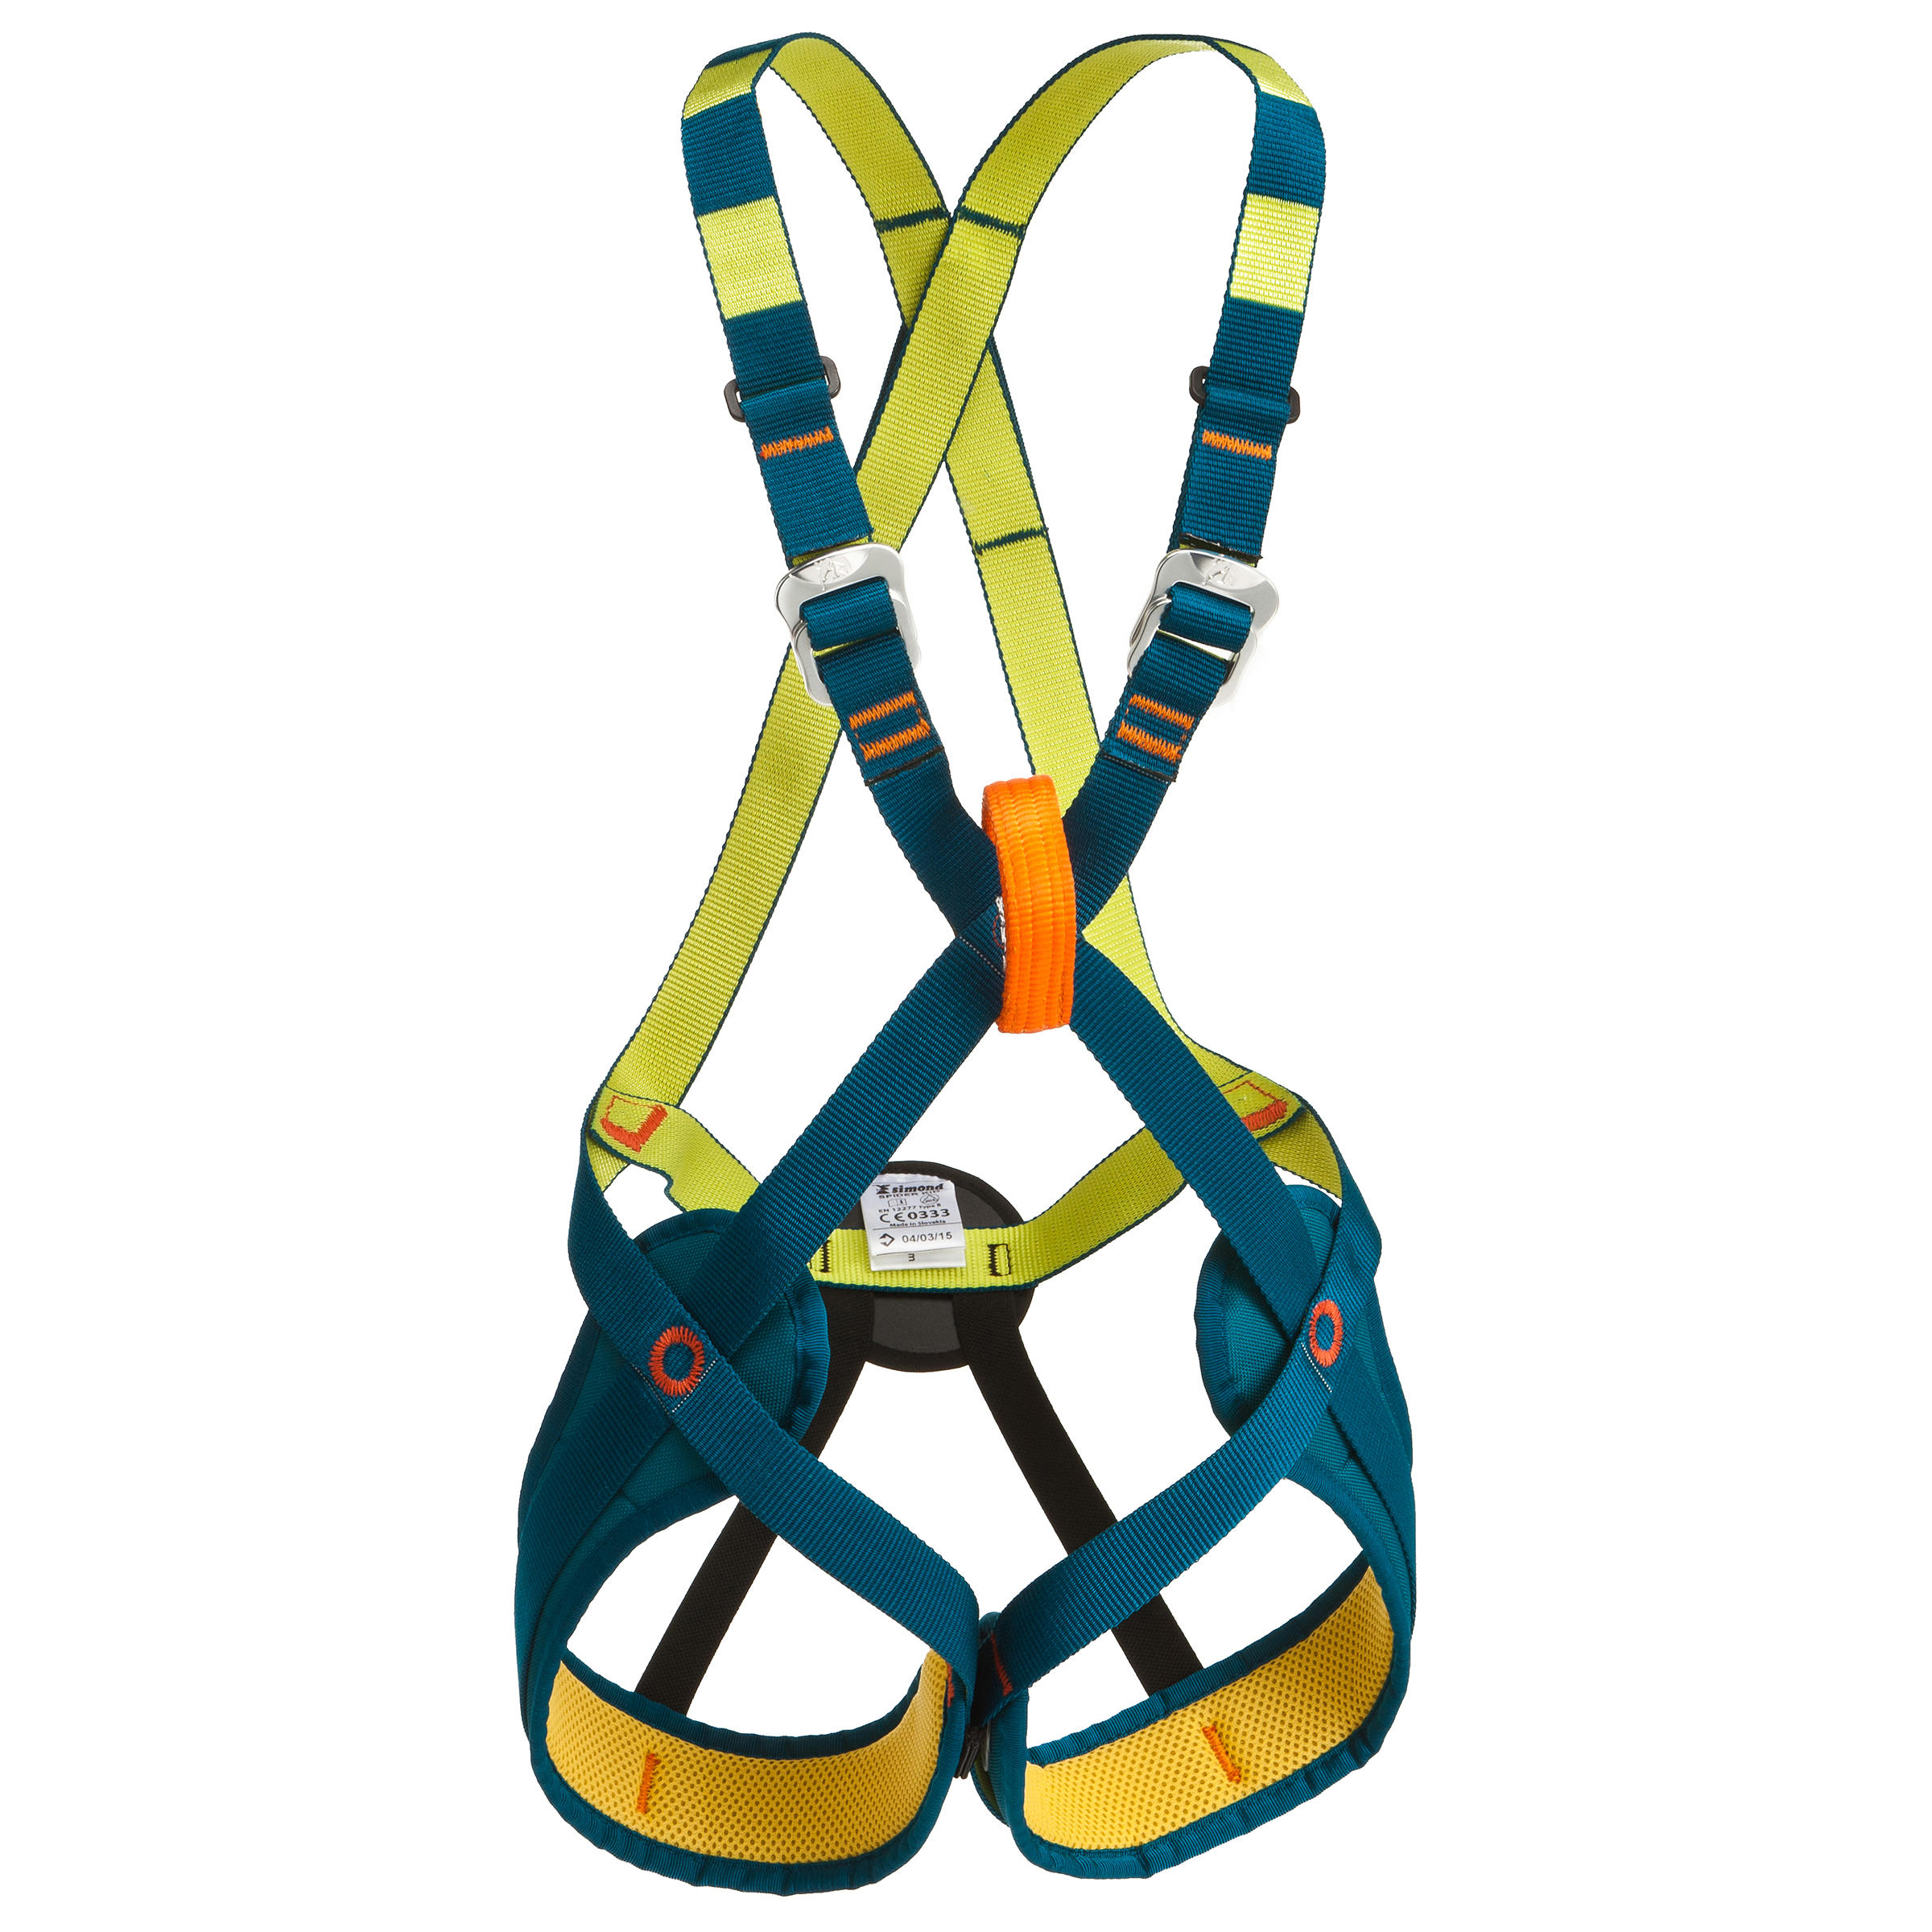 Full Spider Kid Harness